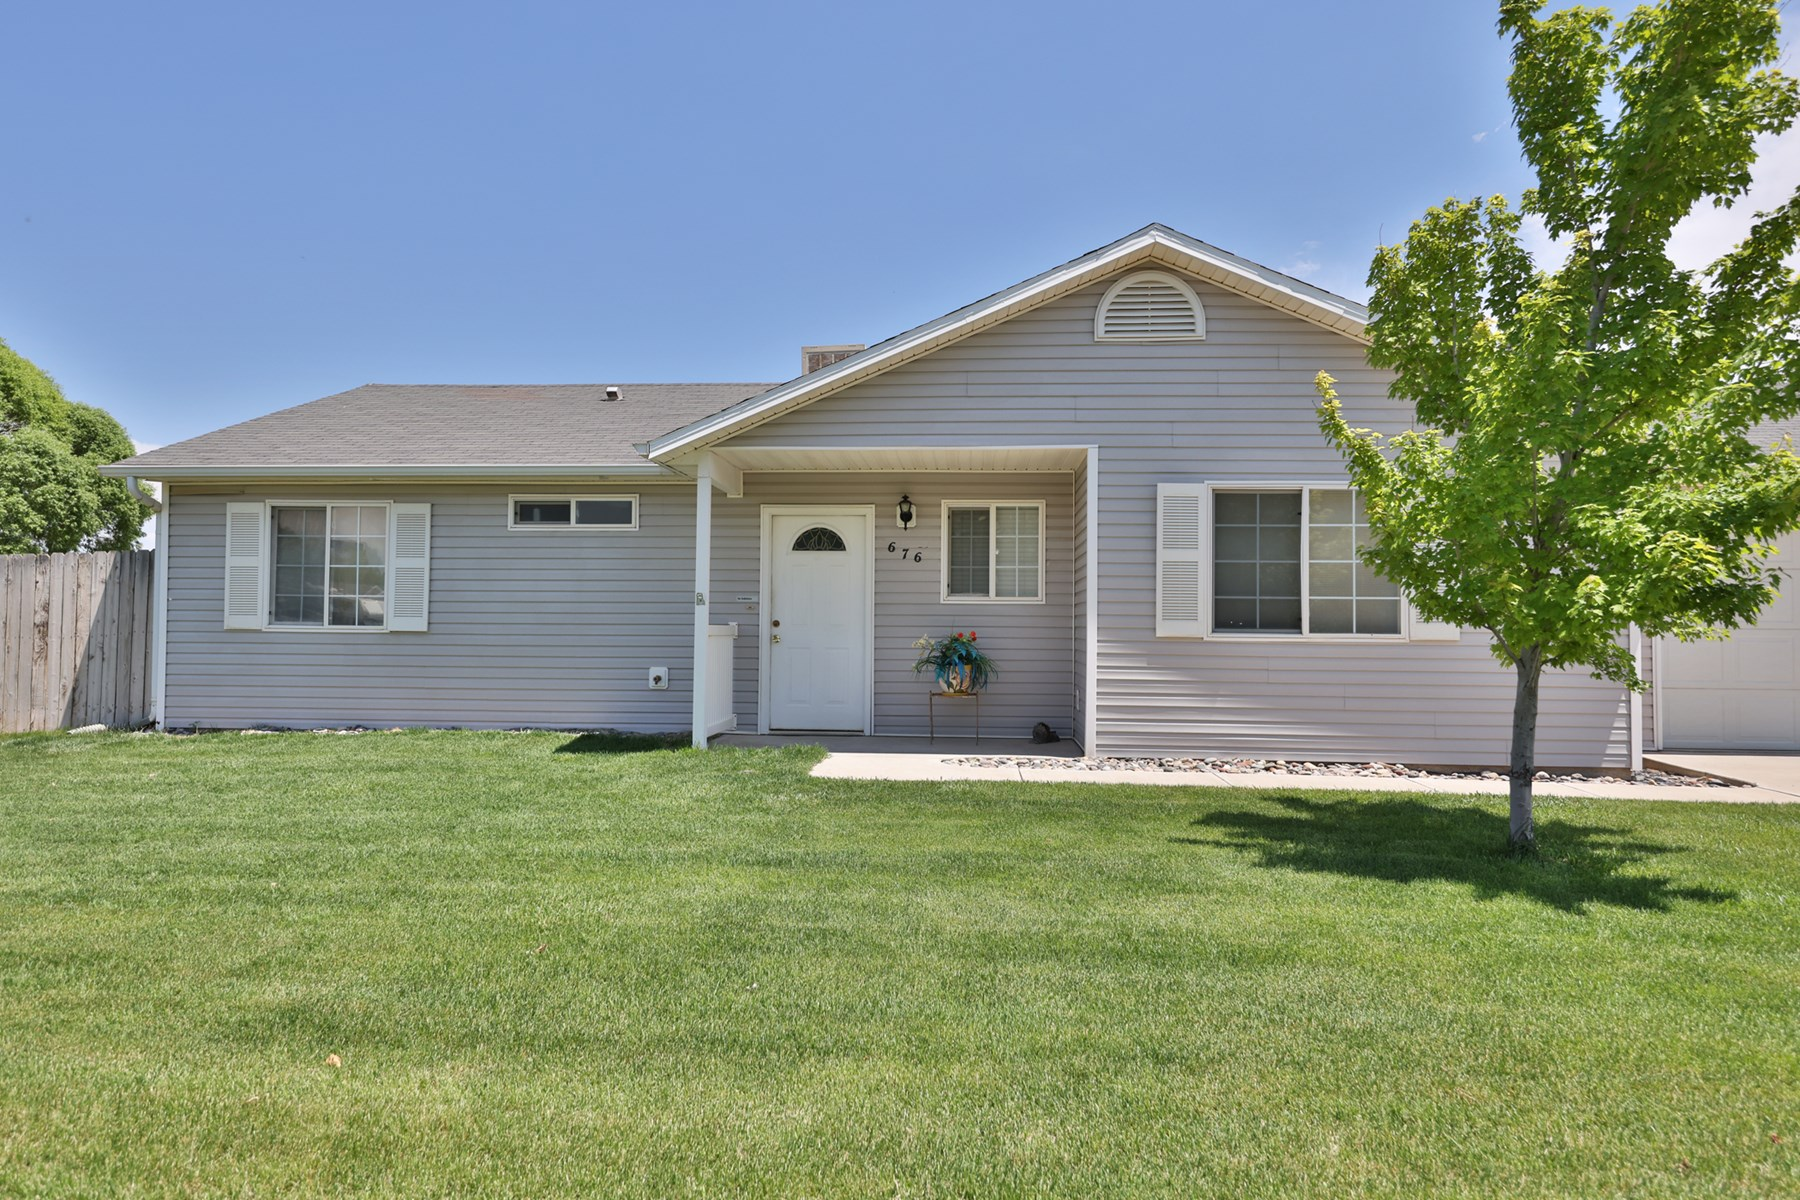 Home For Sale On Large Lot in Fruita, Colorado